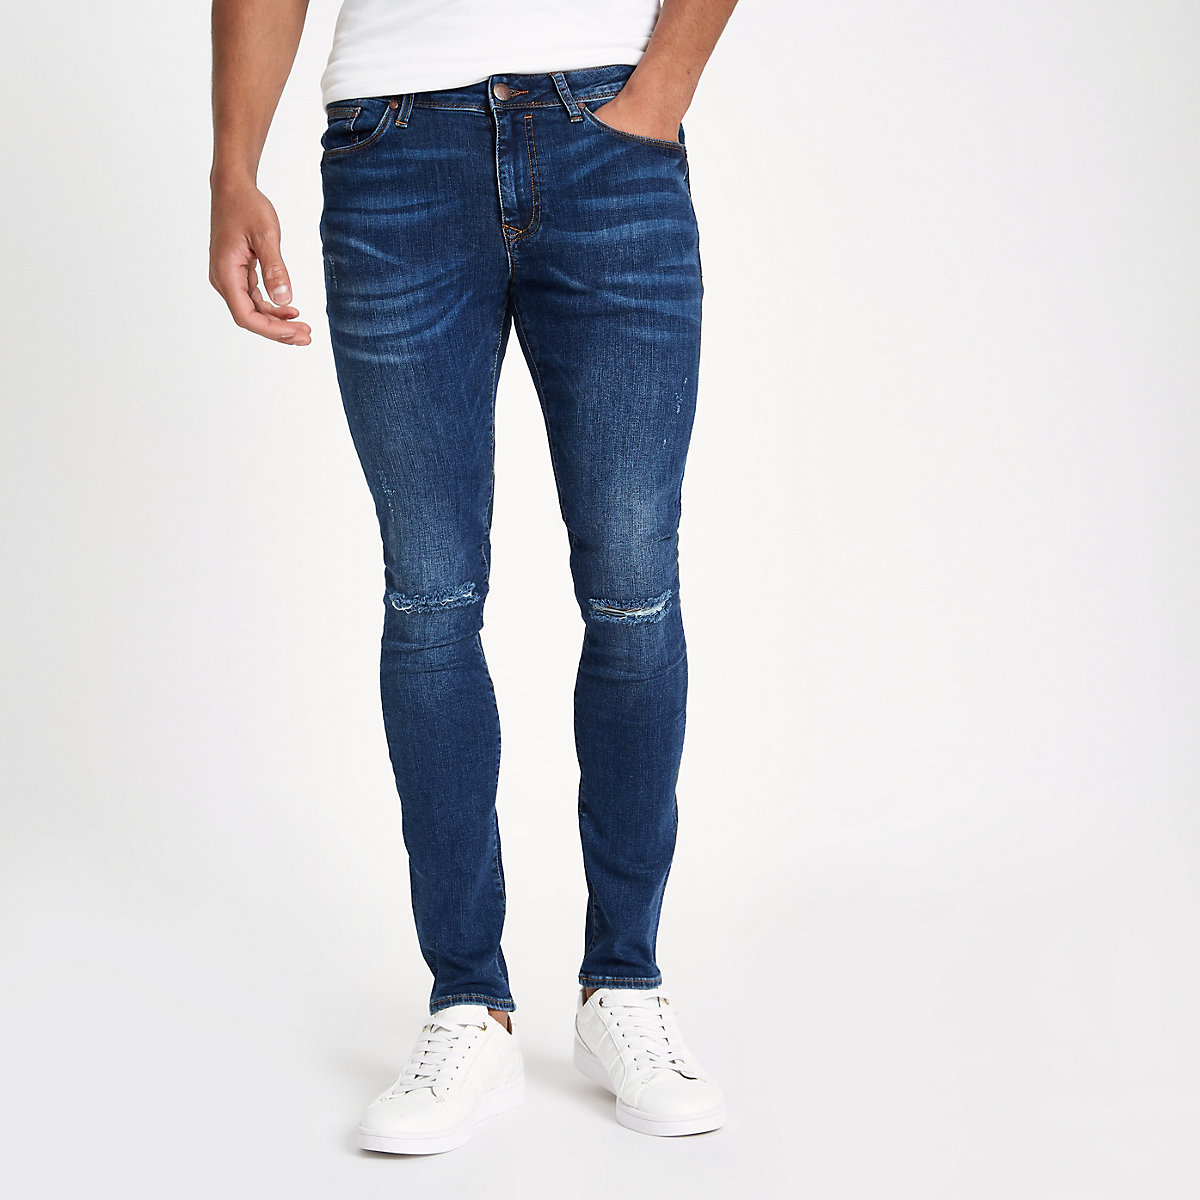 Dark blue ripped super skinny jeans